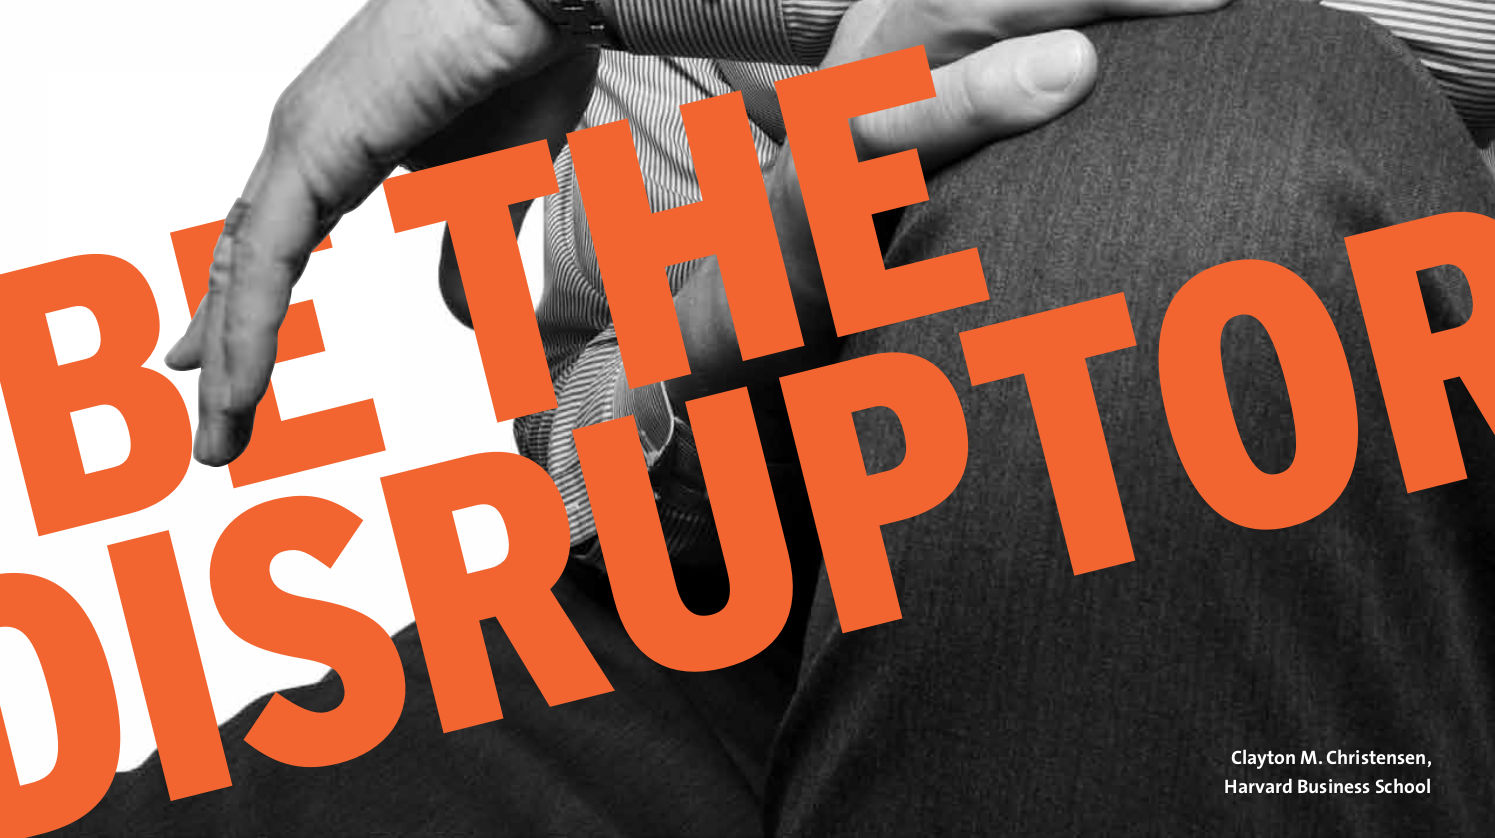 Be the Disruptor Christensen News Neiman Report